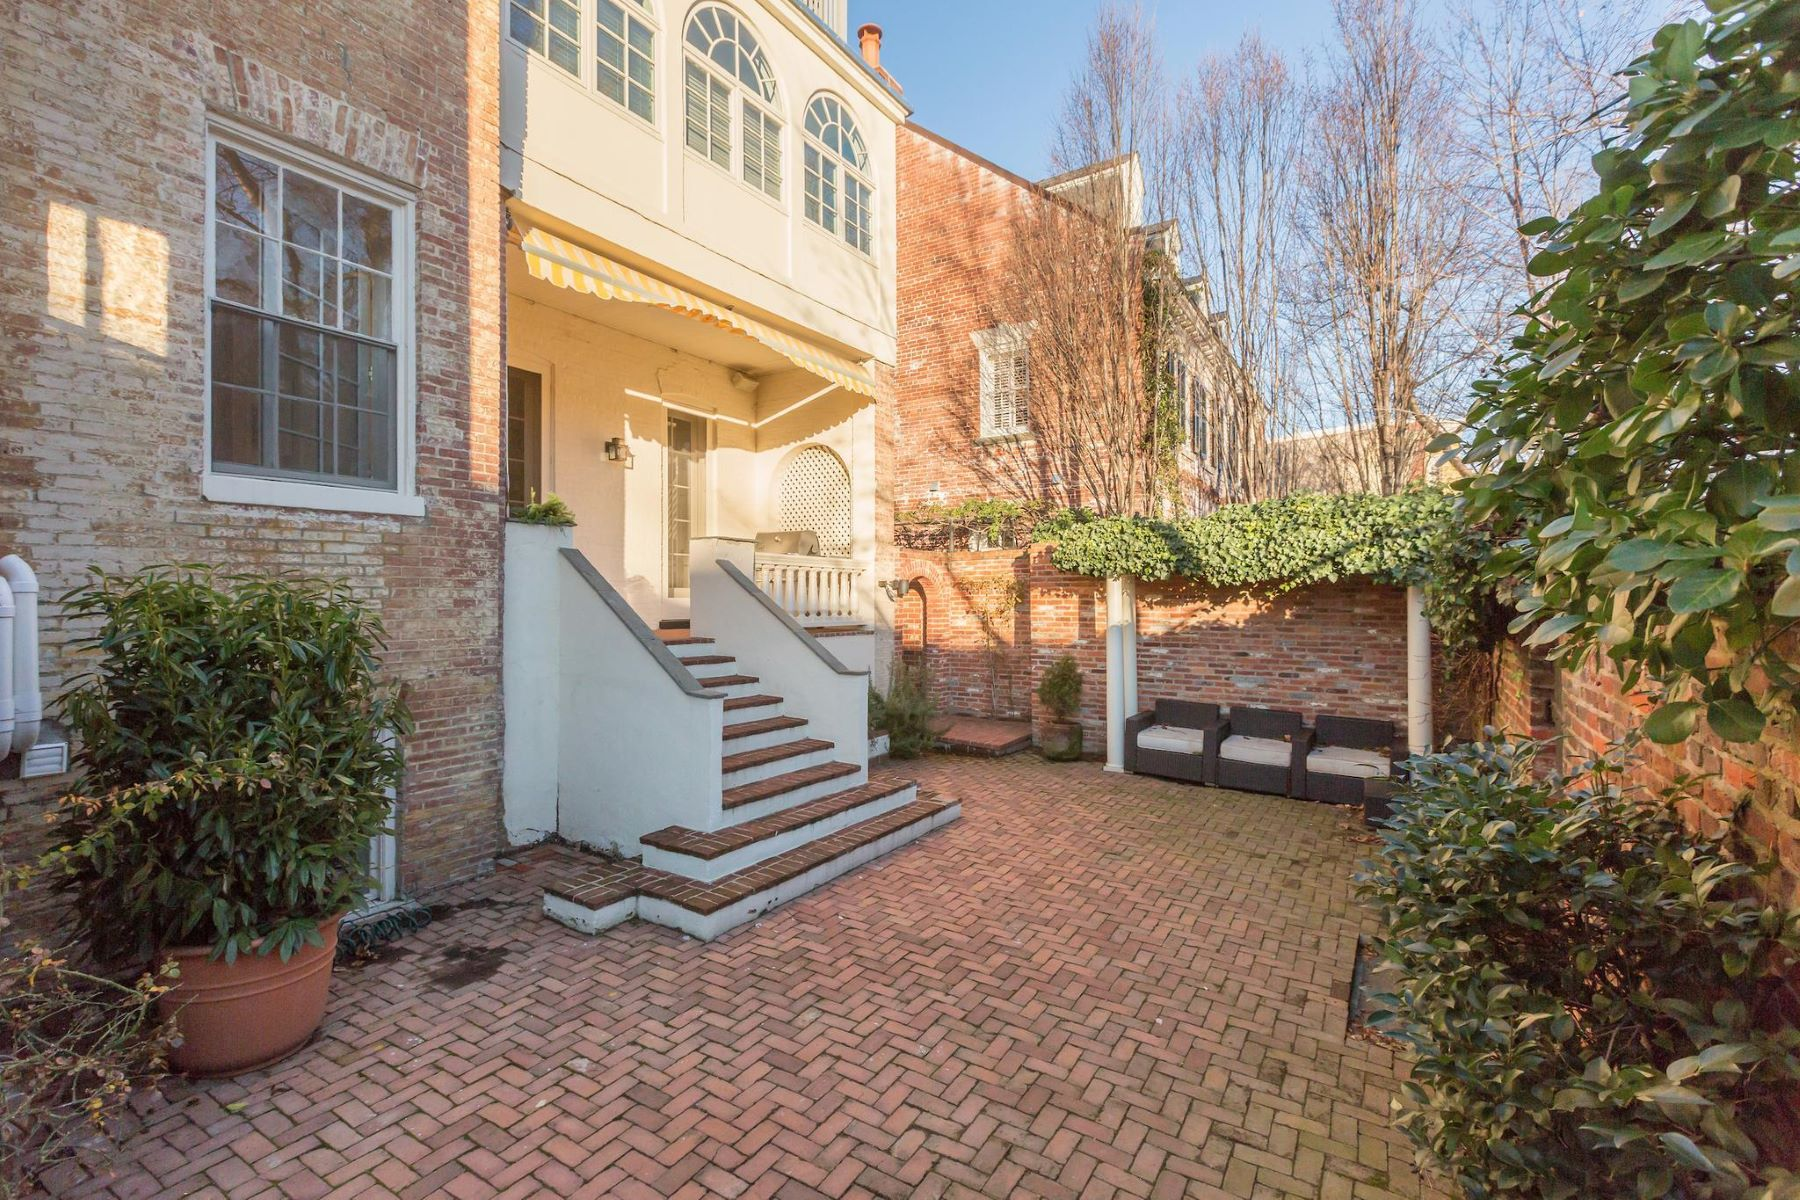 Additional photo for property listing at Georgetown 1403 30th St Nw Washington, District Of Columbia 20007 United States